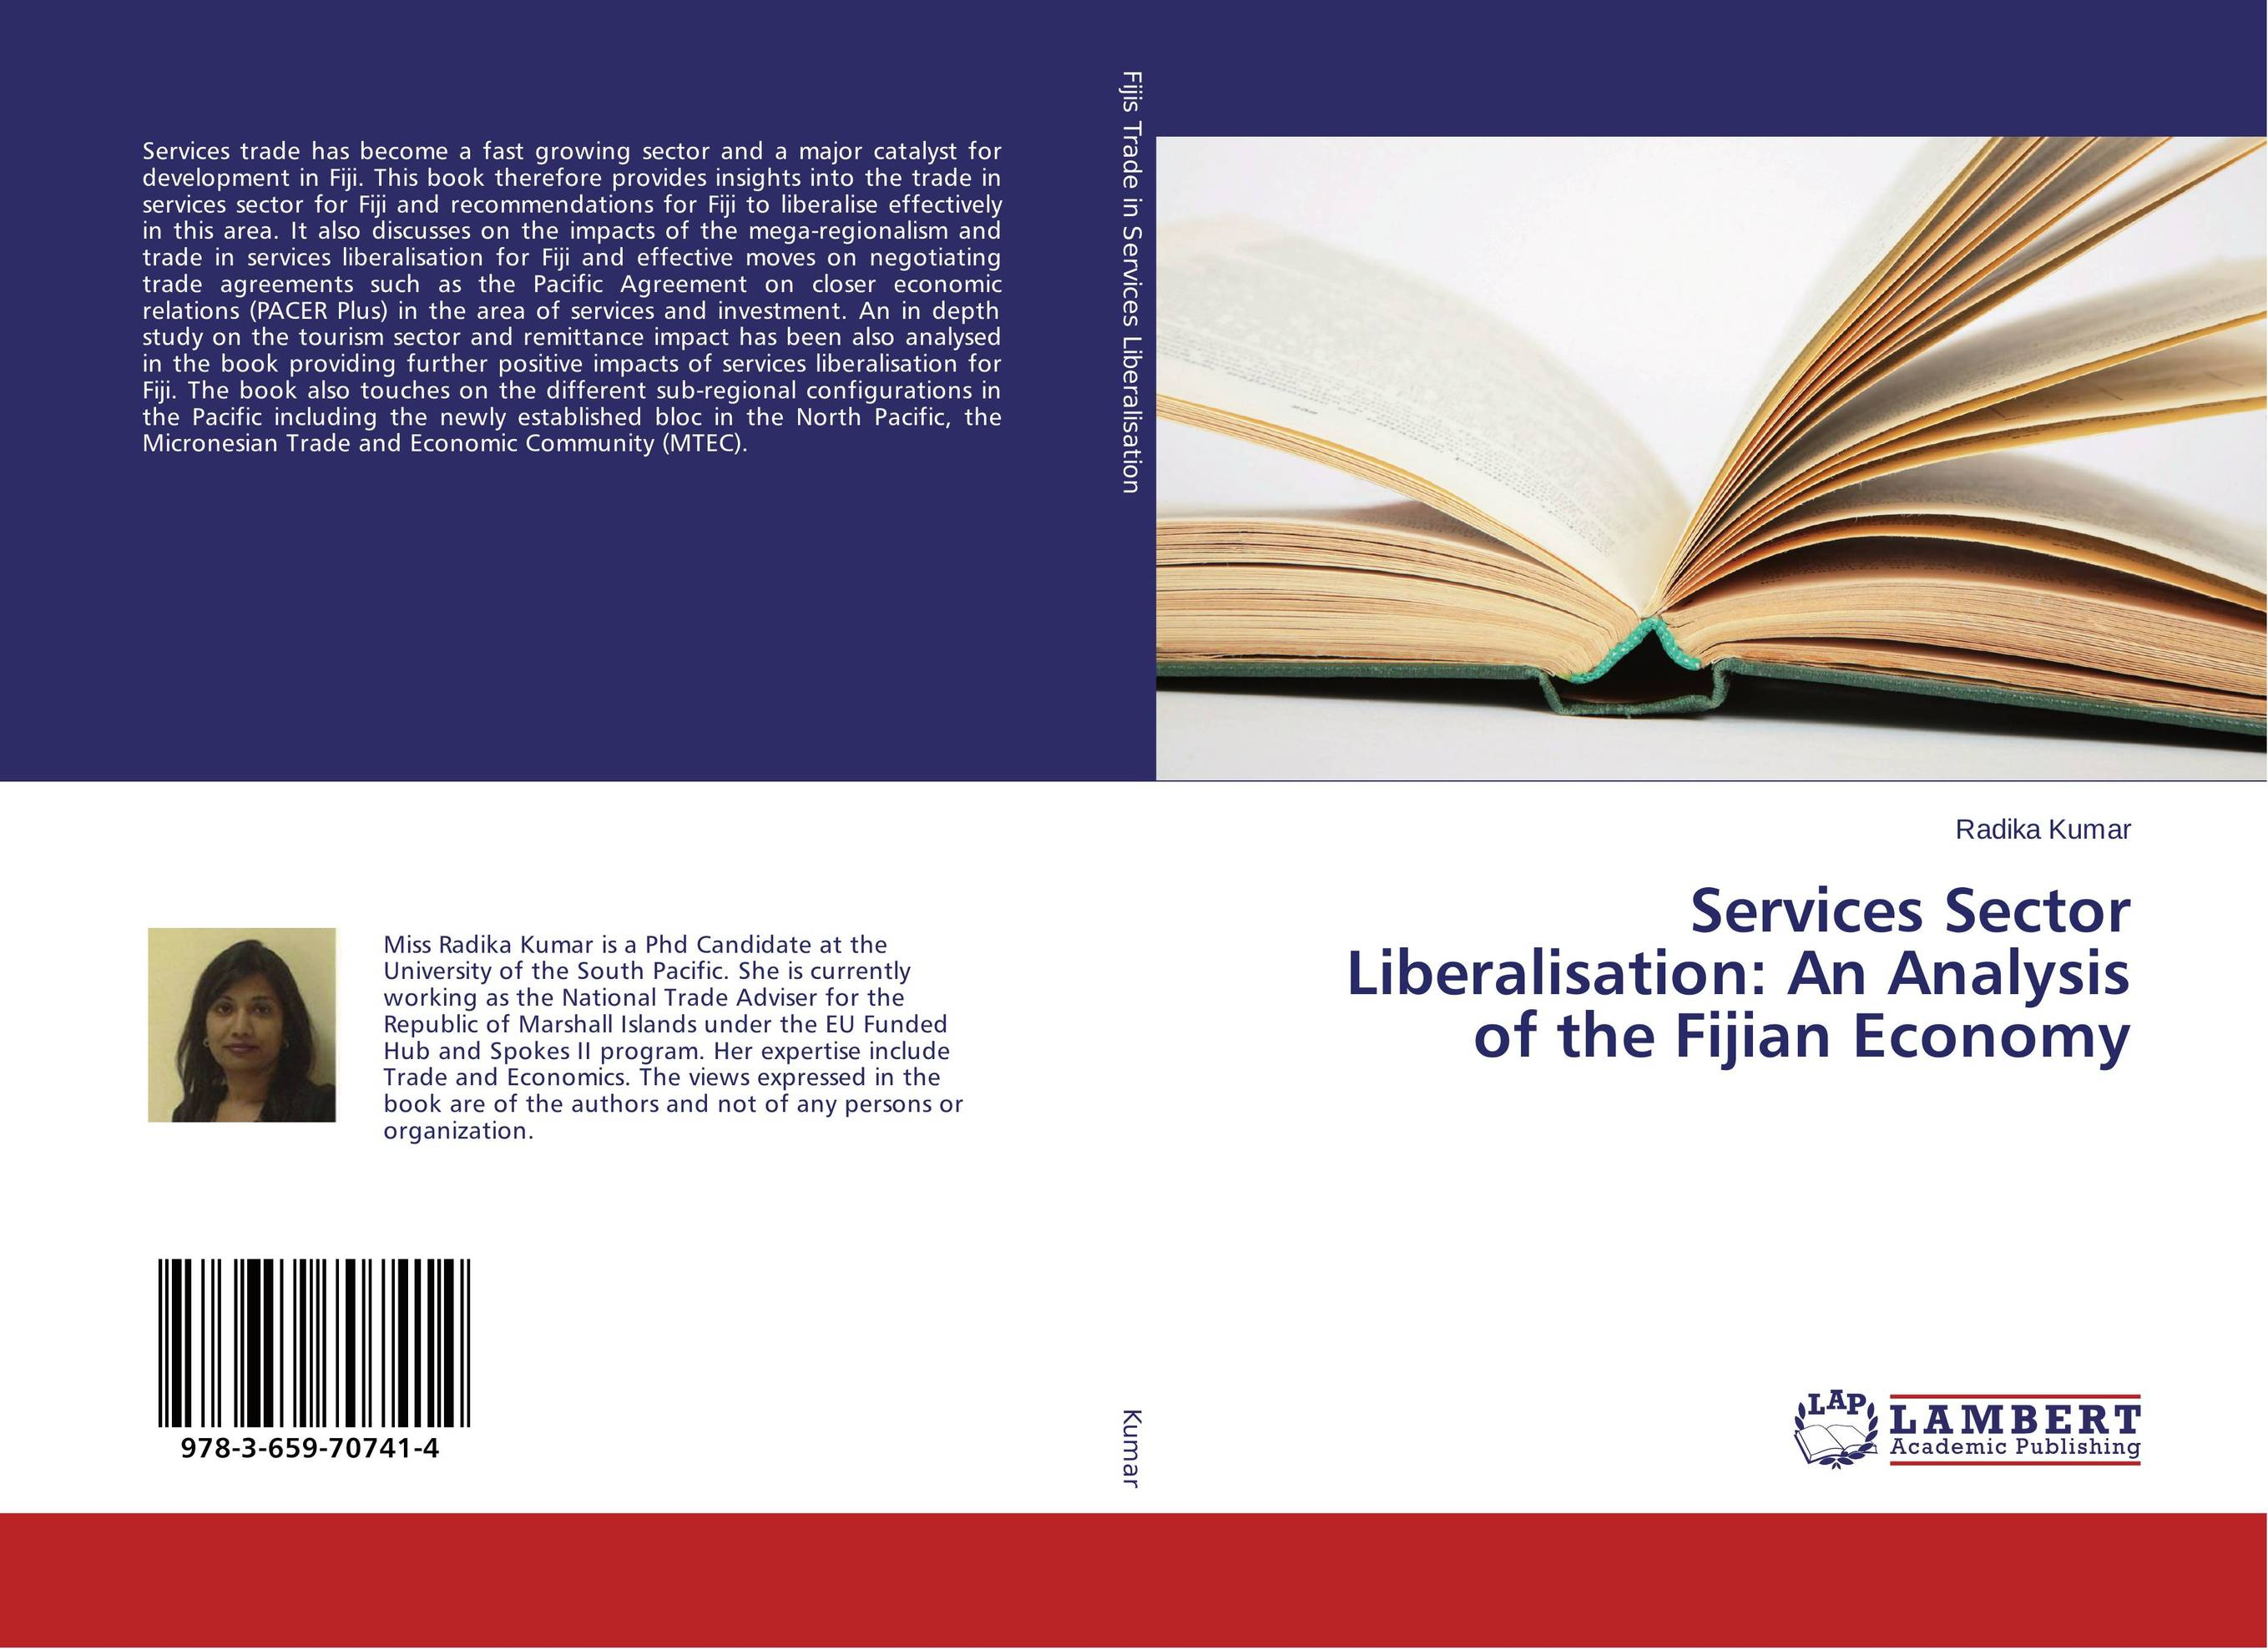 Services Sector Liberalisation: An Analysis of the Fijian Economy an economic analysis of the environmental impacts of livestock grazing